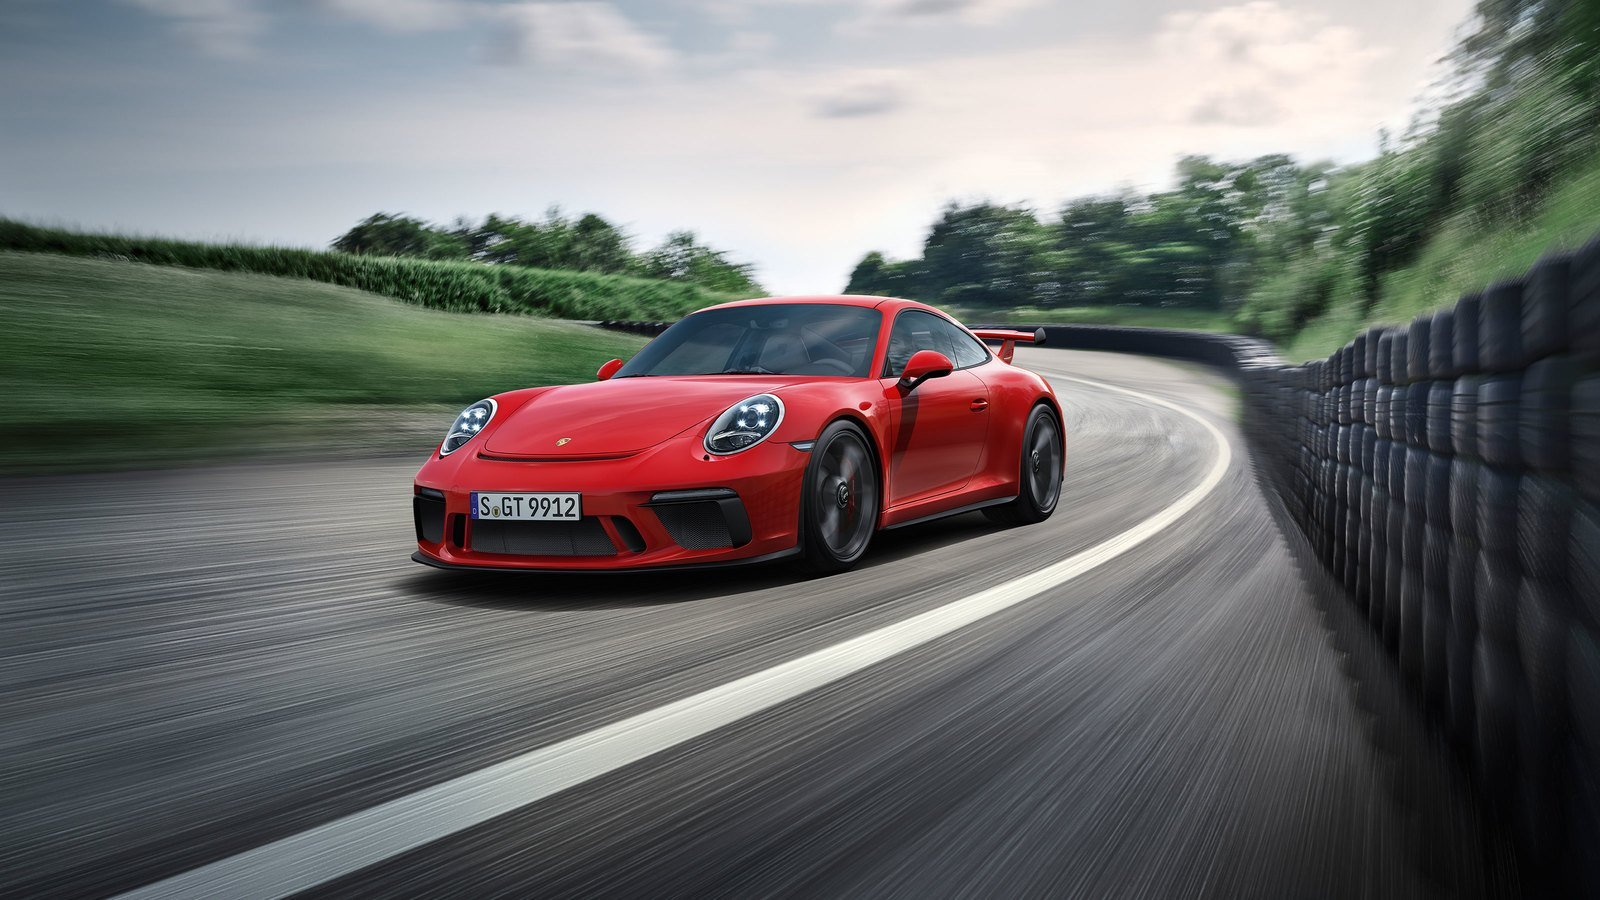 2018 porsche 911 gt3 picture 708340 car review top speed. Black Bedroom Furniture Sets. Home Design Ideas